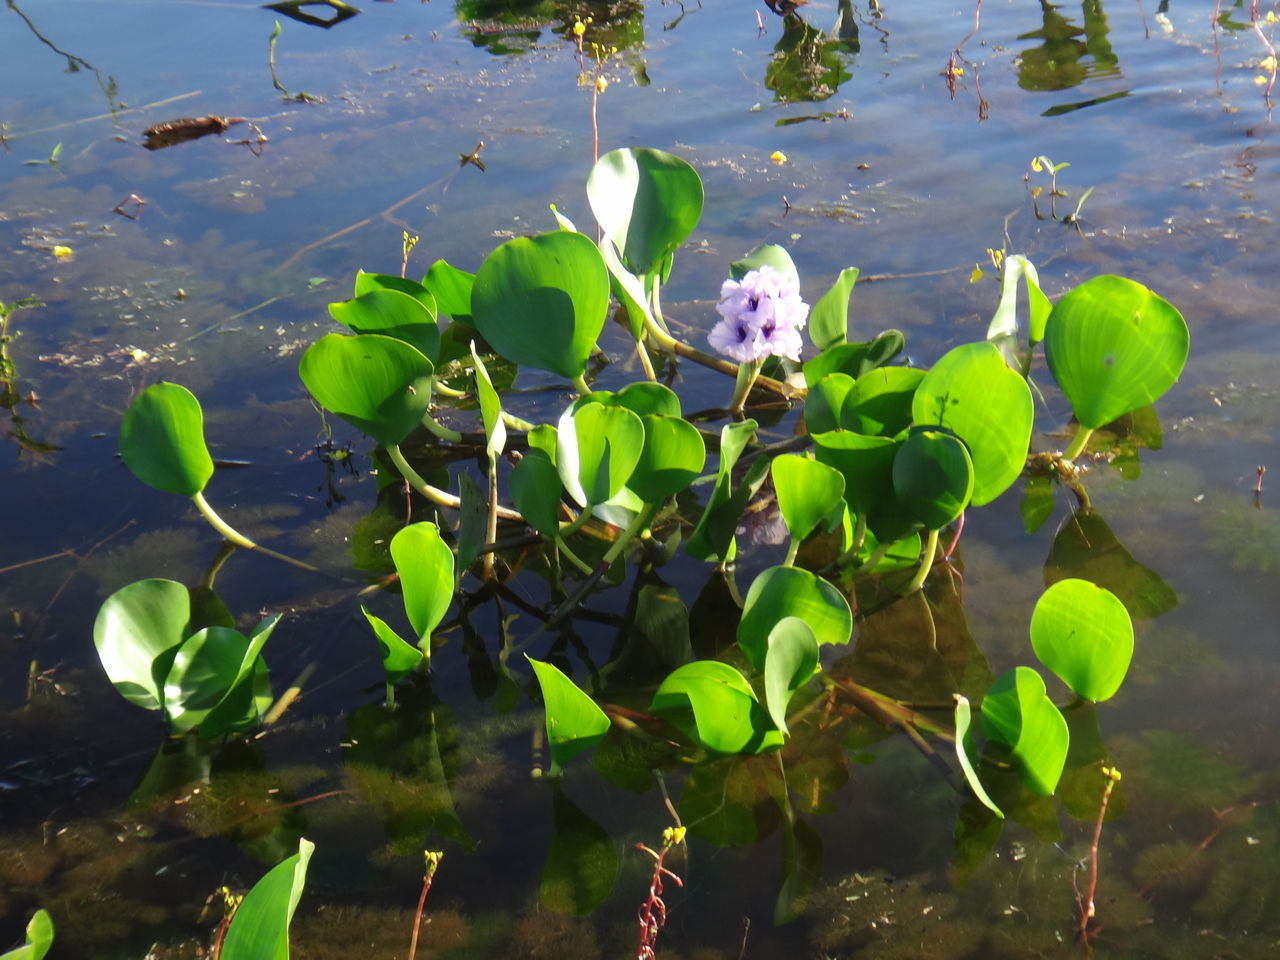 Beauty In Nature Close-up Day EICCR Floating On Water Flower Flower Head Fragility Freshness Green Color Growth High Angle View Lake Leaf Lily Pad Nature Nile Lily No People Outdoors Petal Plant Sunlight Water Water Hyacinth Water Lily